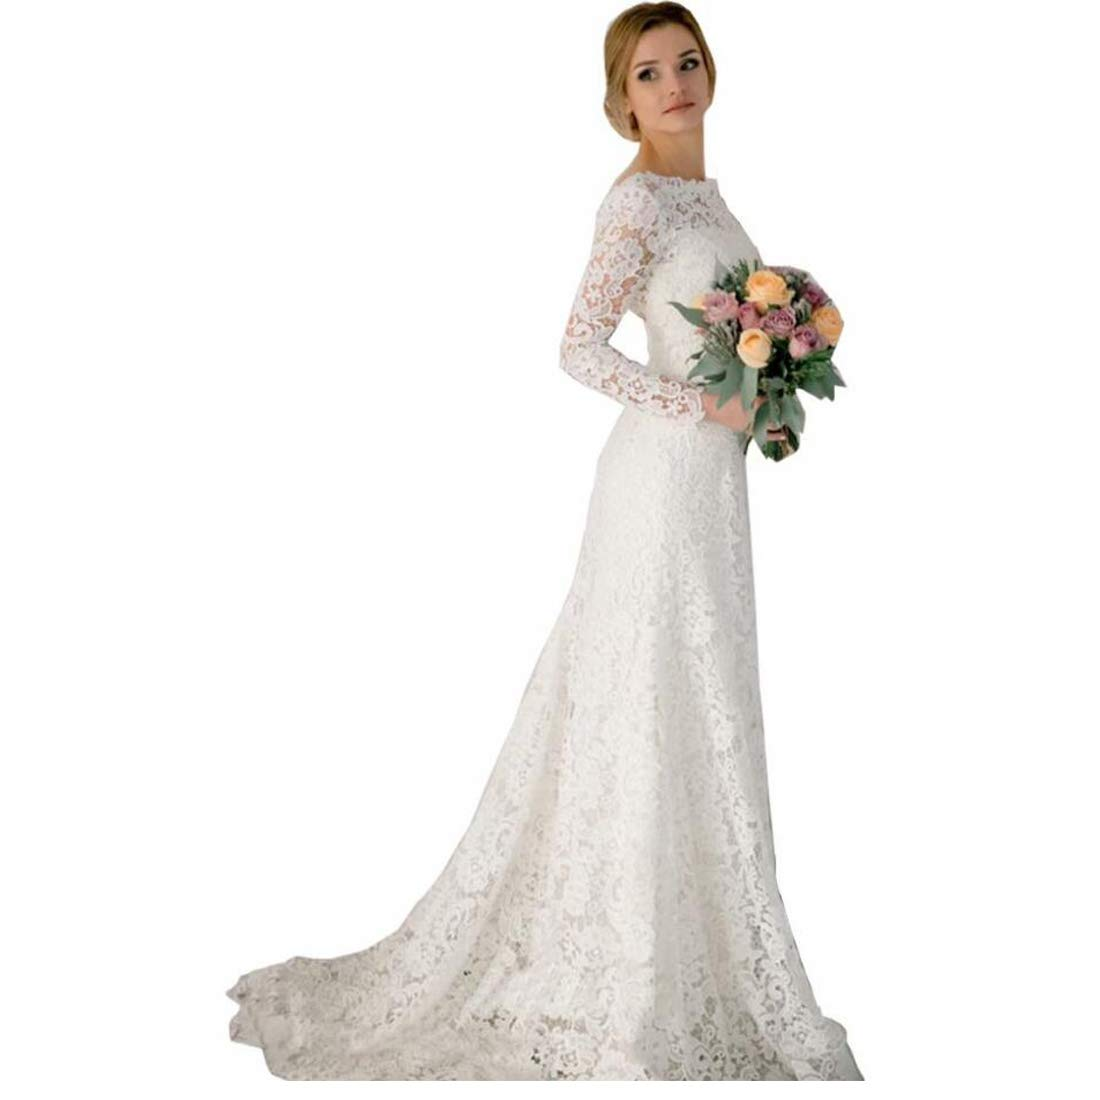 c3bc736804f6 Used Wedding Dresses: Where to Buy and Sell Online